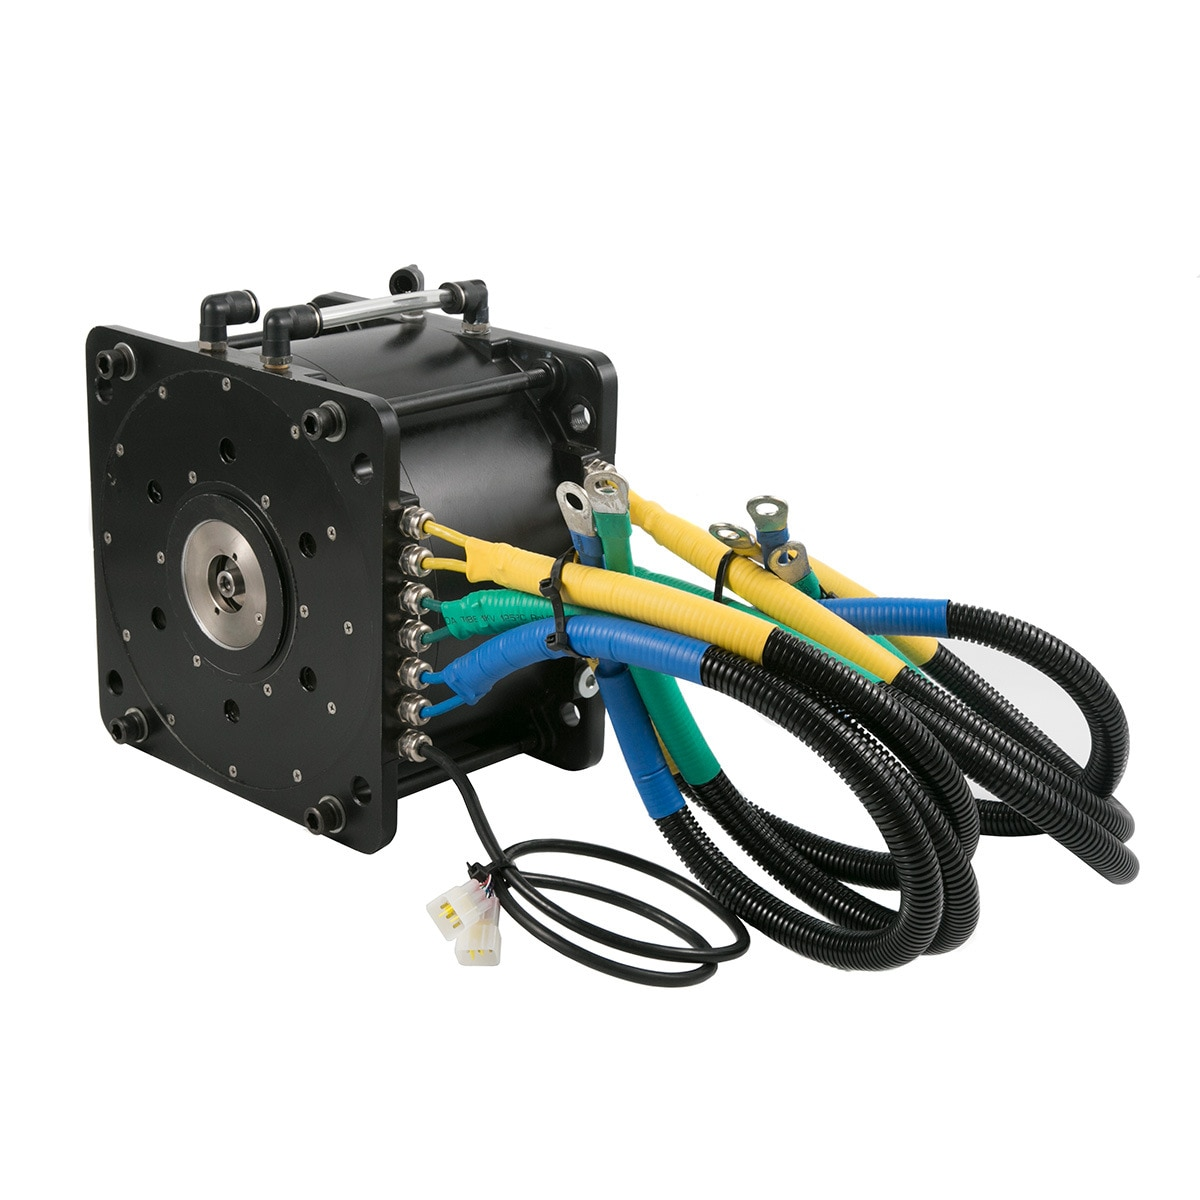 20KW brushless DC car motor, electric car conversion components, electric car motor